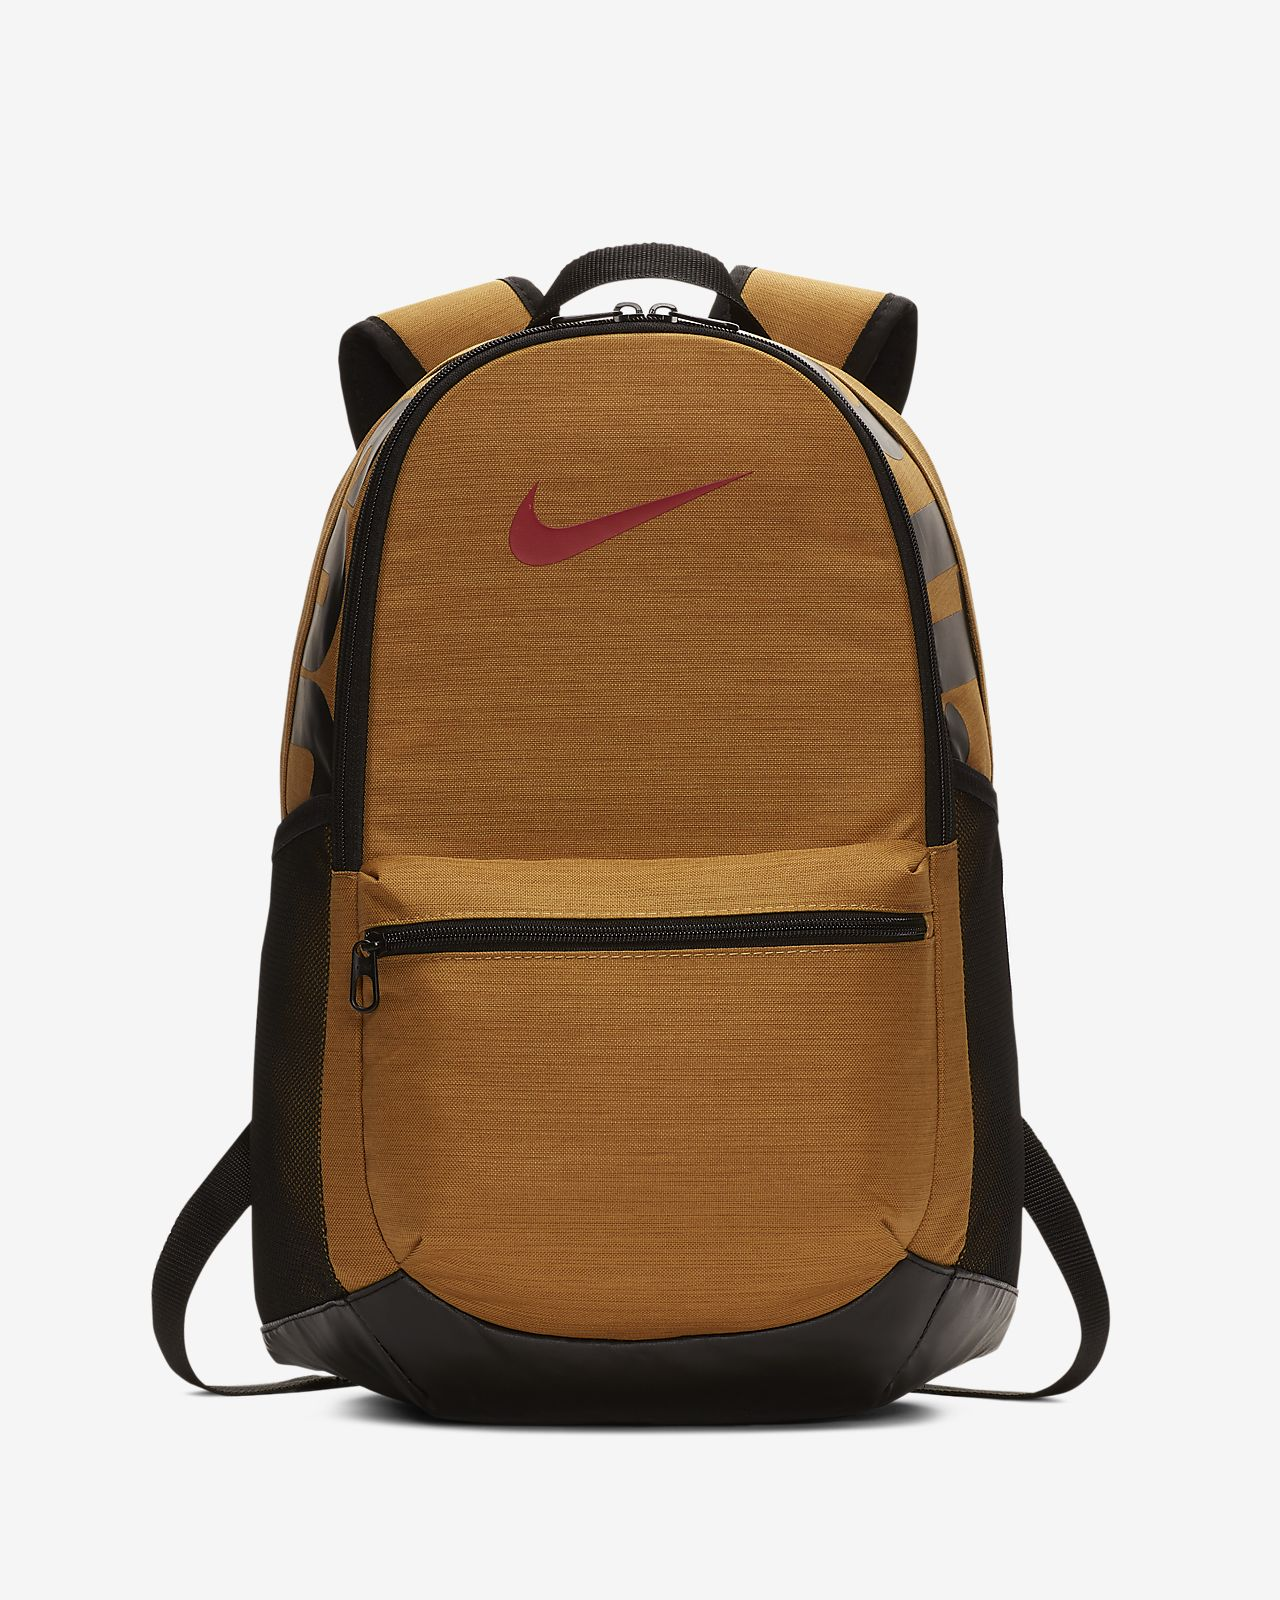 407f2f6e2651 Nike Brasilia (Medium) Training Backpack. Nike.com ID